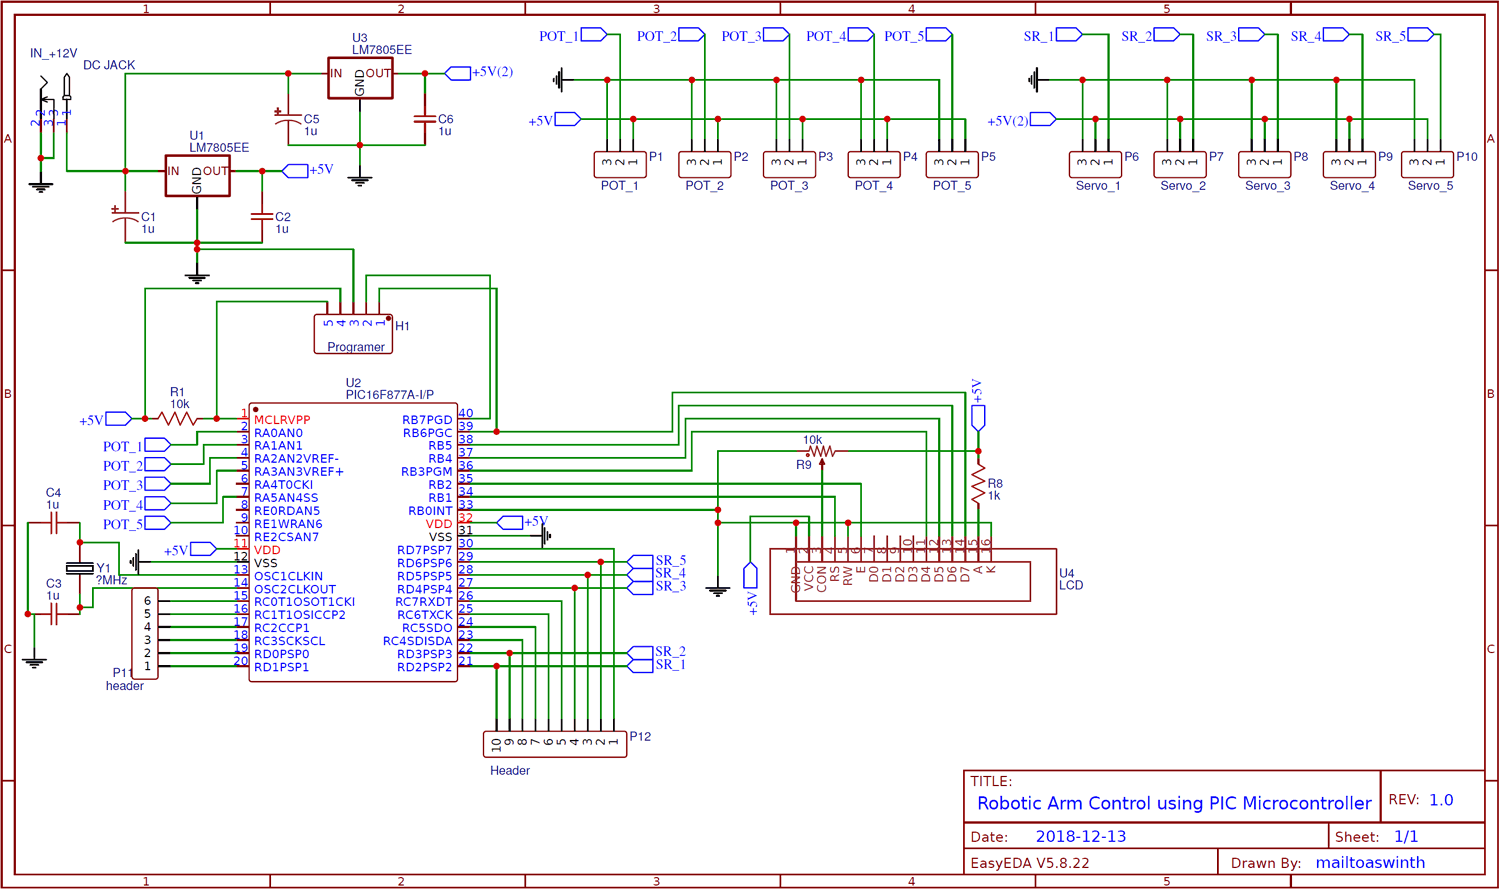 Circuit Diagram for Robotic Arm Control using PIC Microcontroller